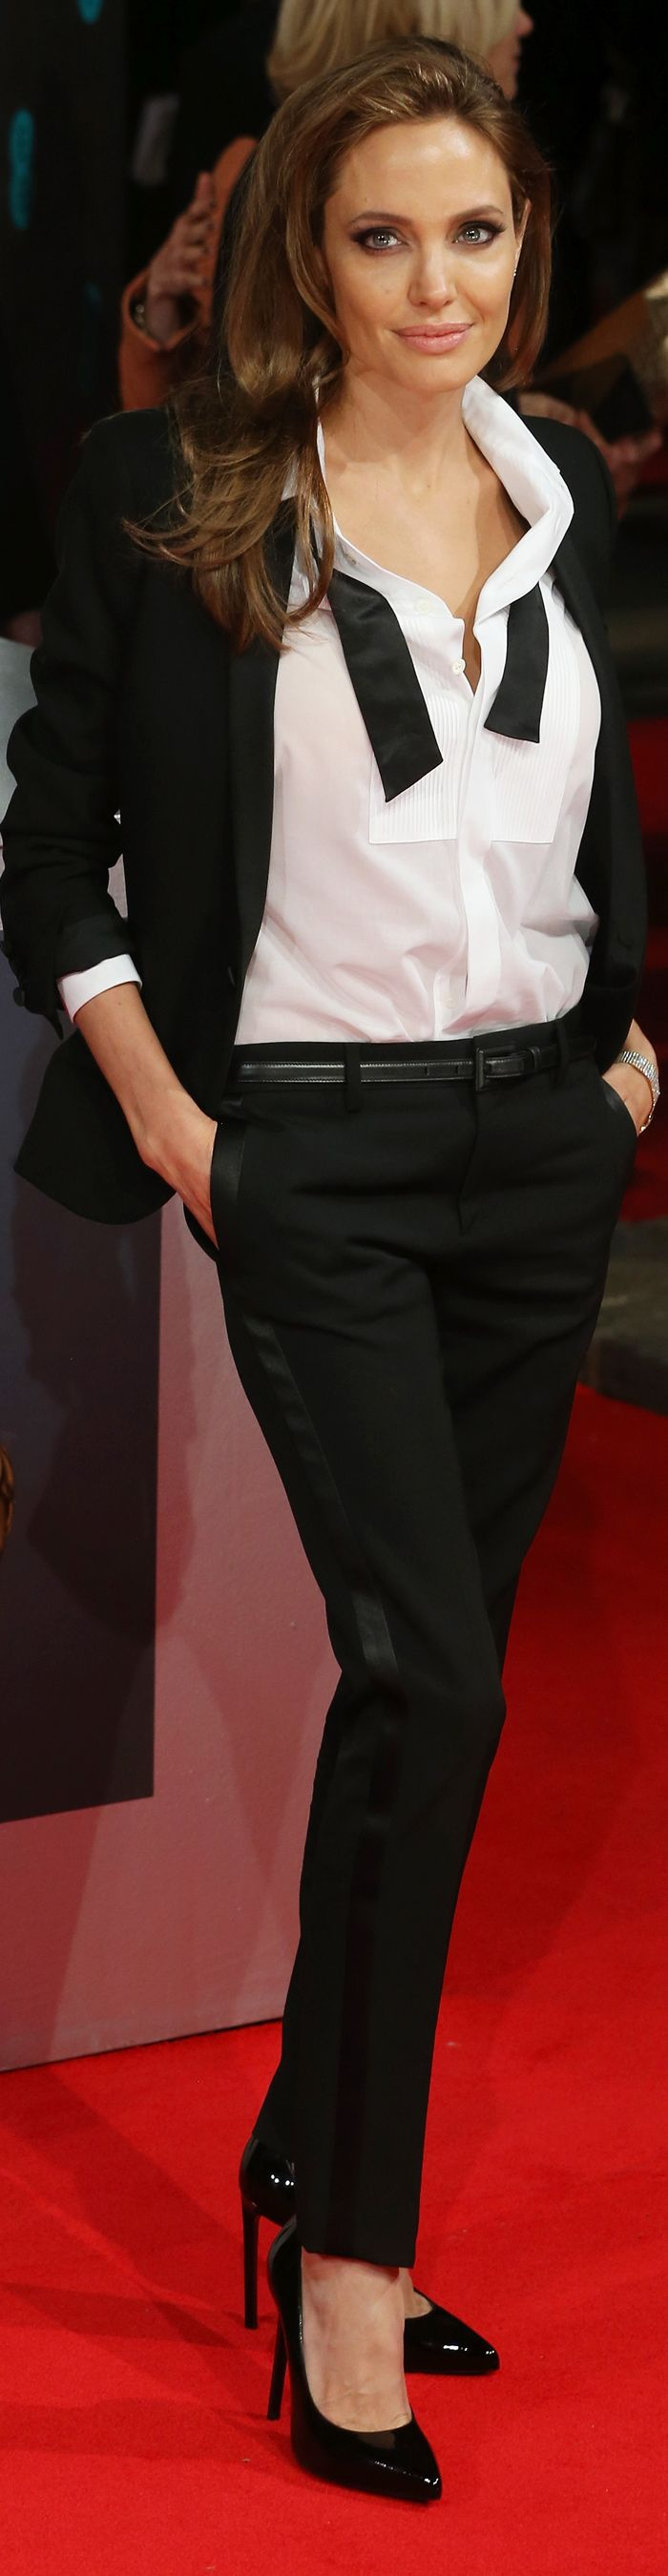 Angelina Jolie's Saint Laurent suit was one of the week's top ten looks. See the rest here: popsu.gr/34124274